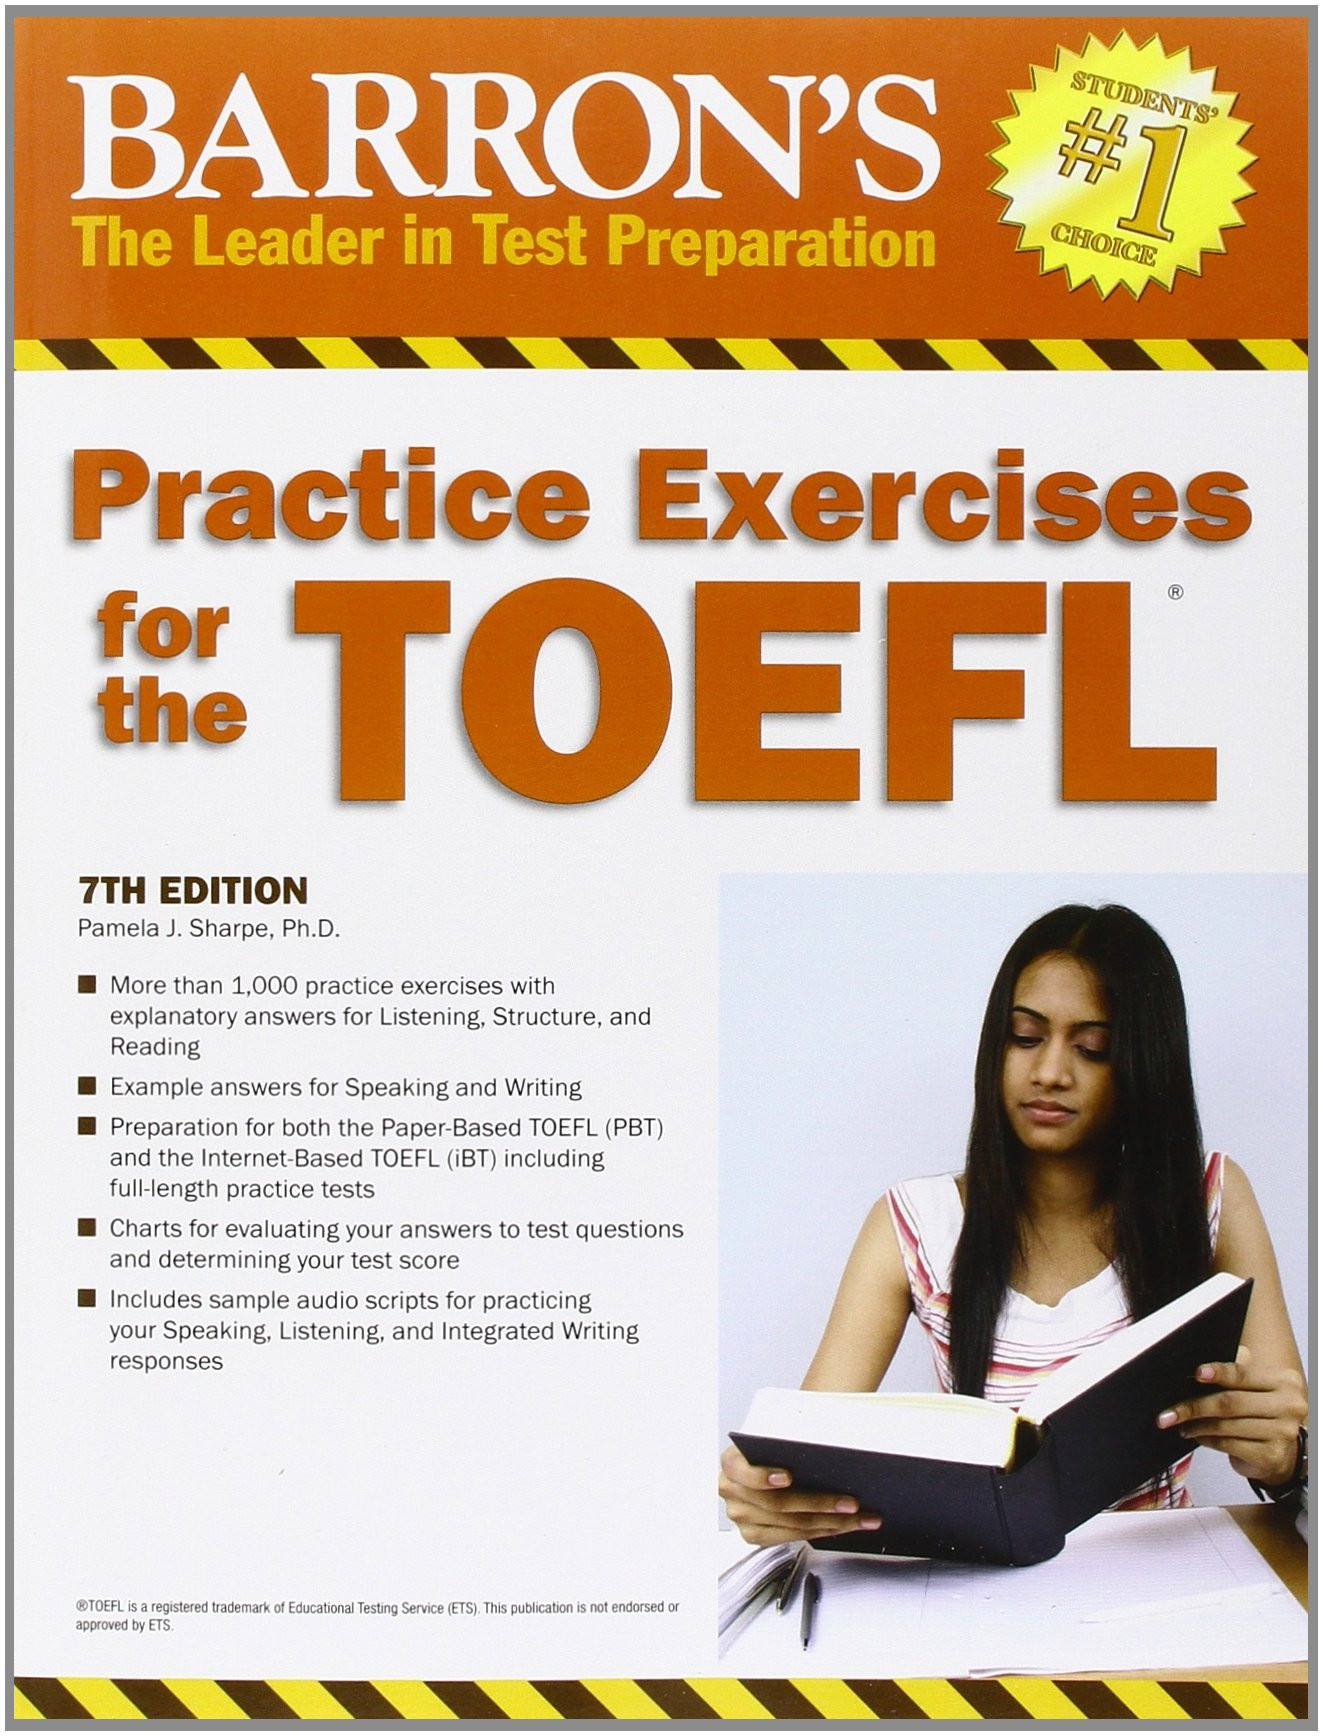 Buy practice exercises for the toefl 7th edition barrons buy practice exercises for the toefl 7th edition barrons educational series book online at low prices in india practice exercises for the toefl 7th fandeluxe Choice Image